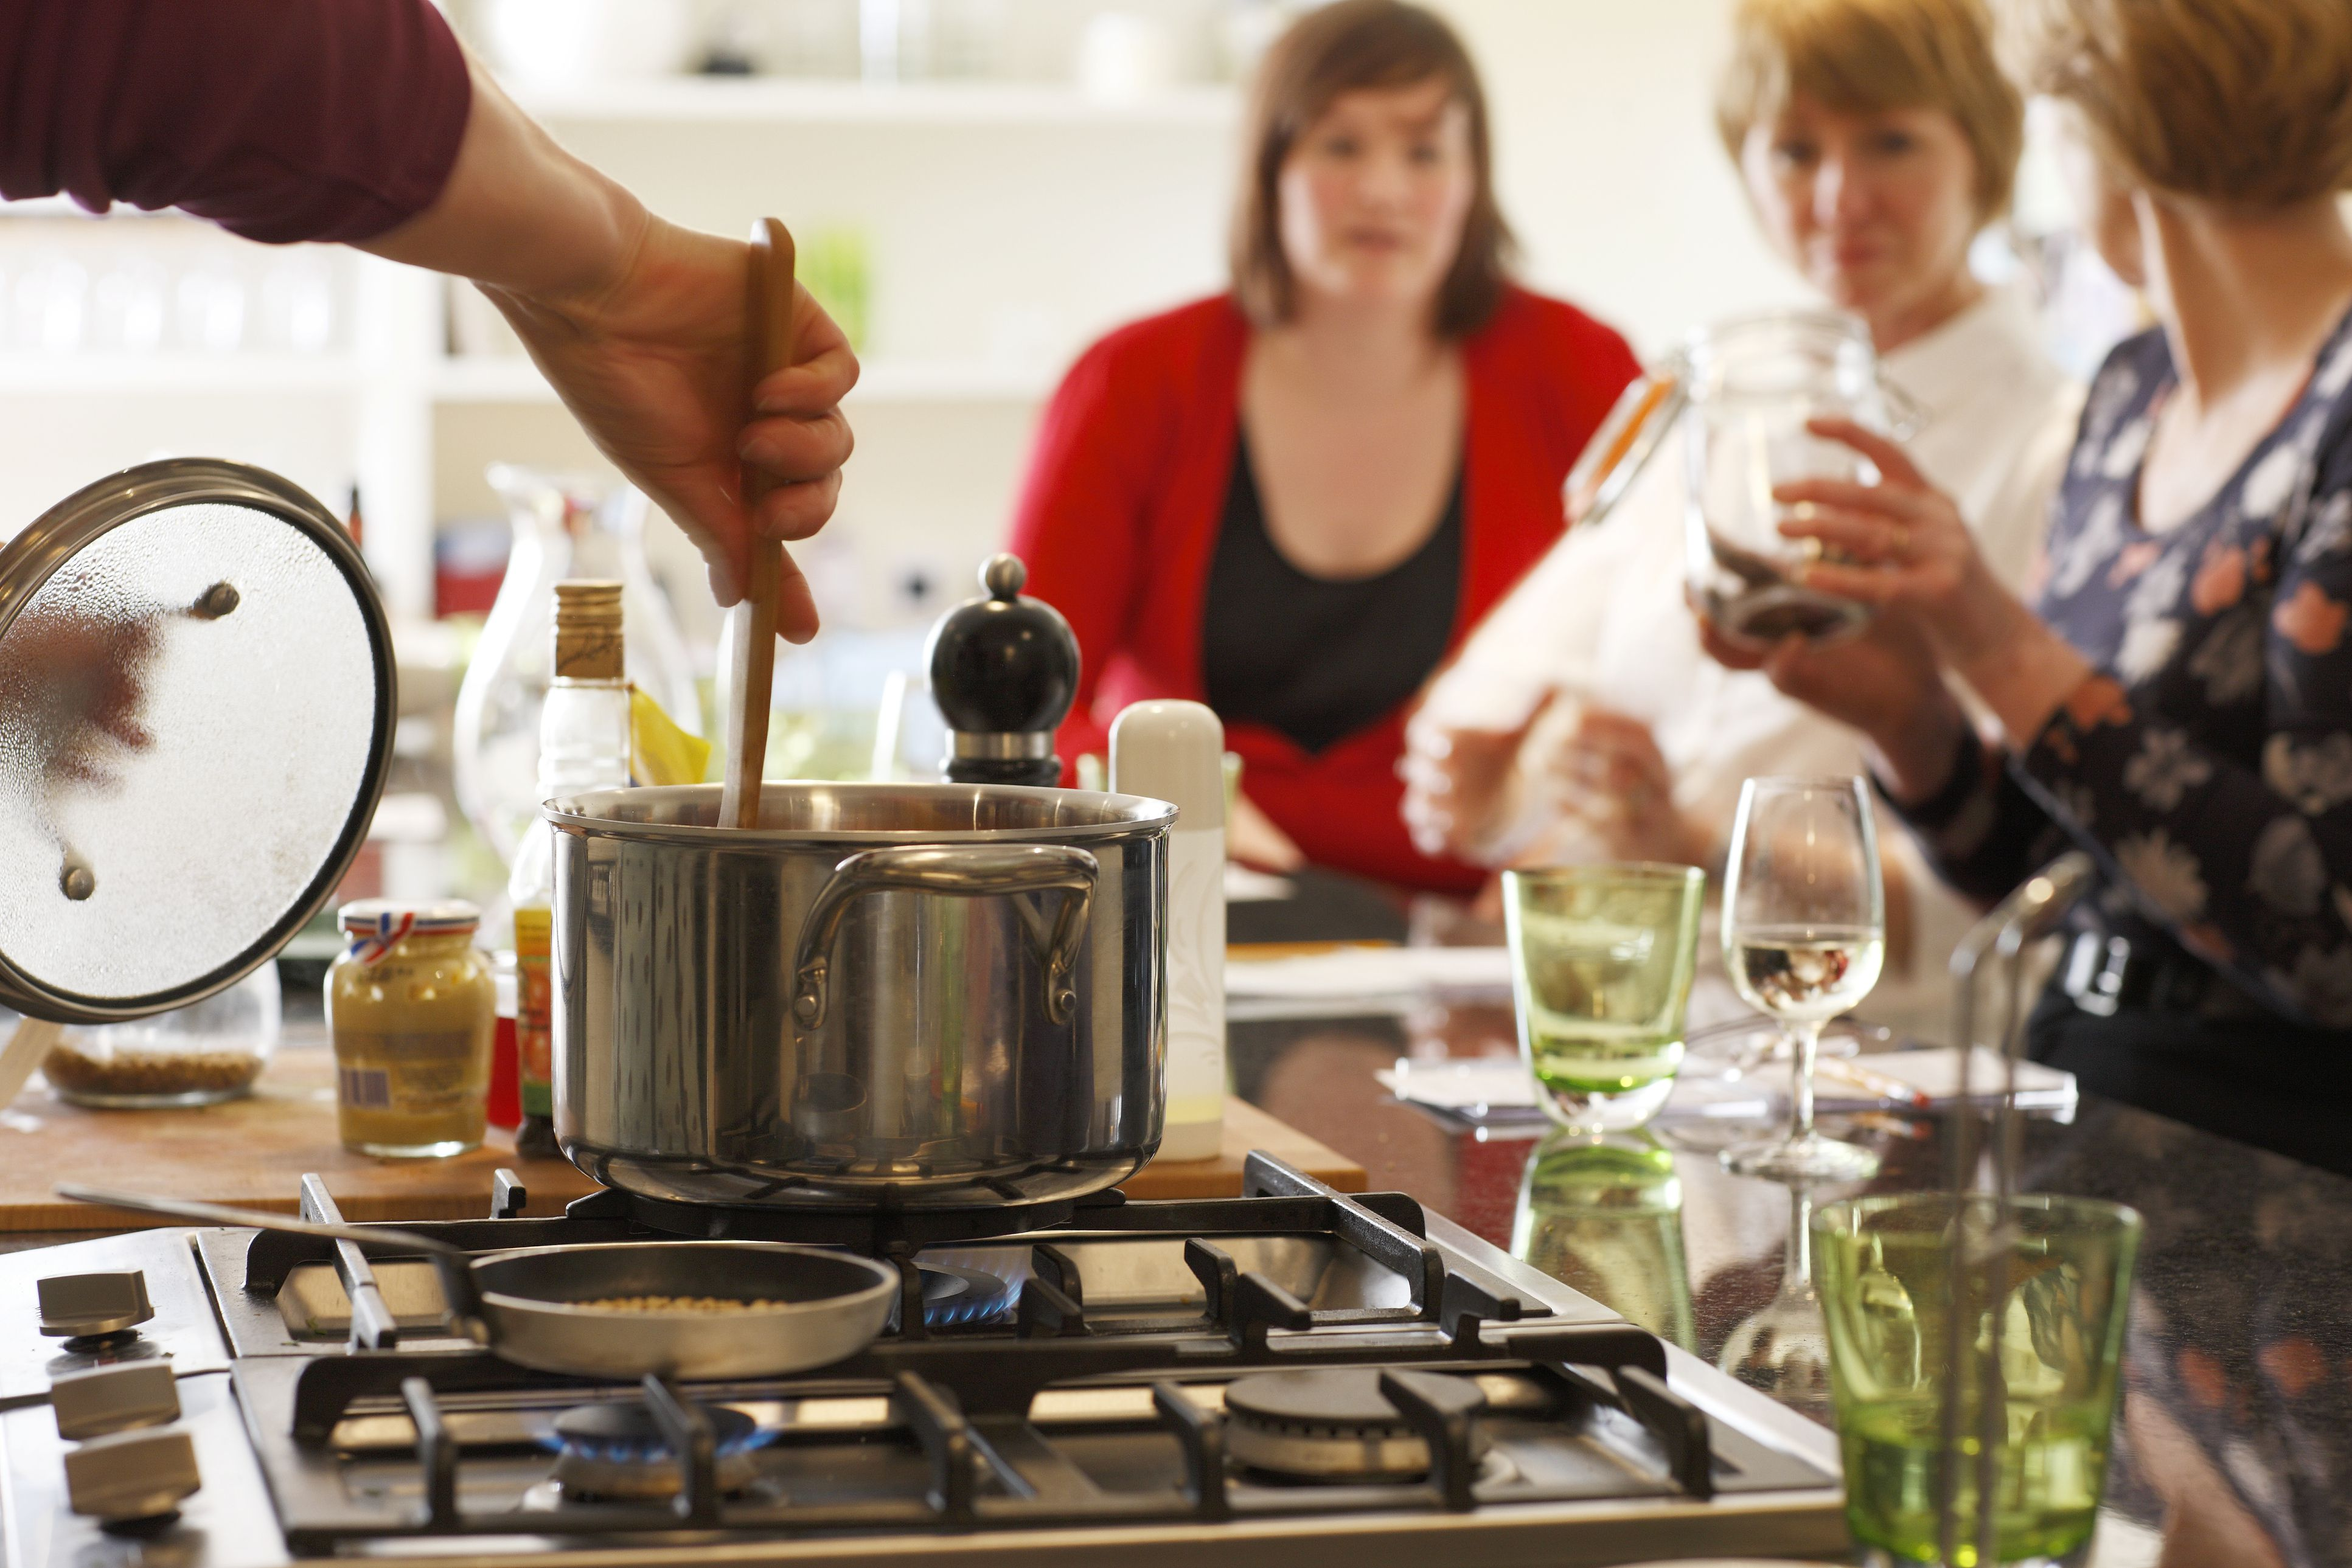 Stirring a pot on a stove in a kitchen island with guests in the background.